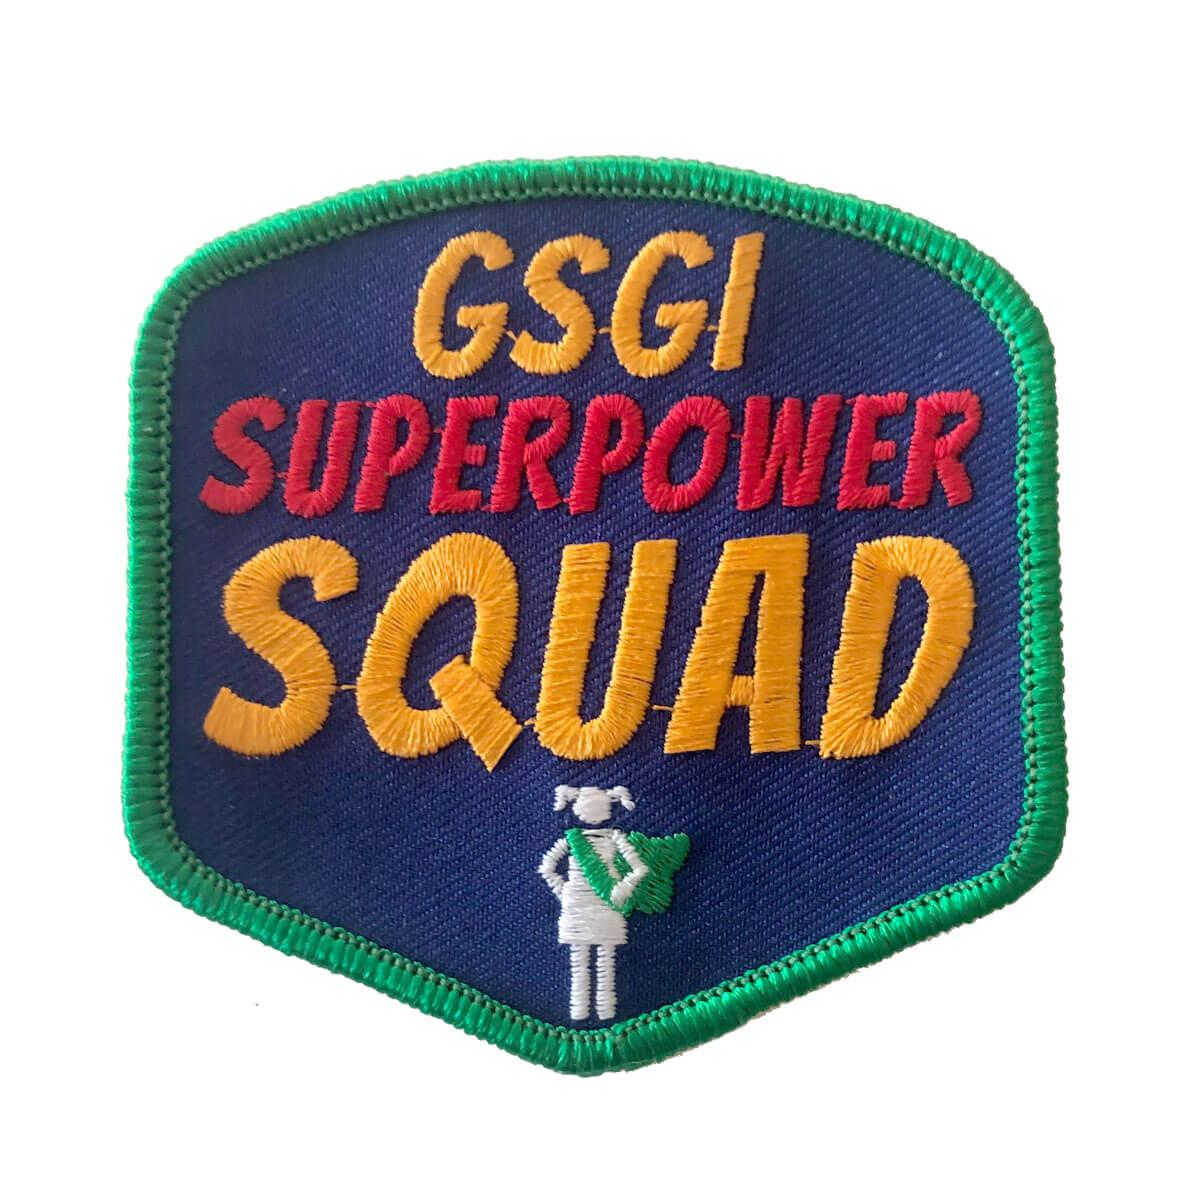 GSGI Super Power Squad Patch